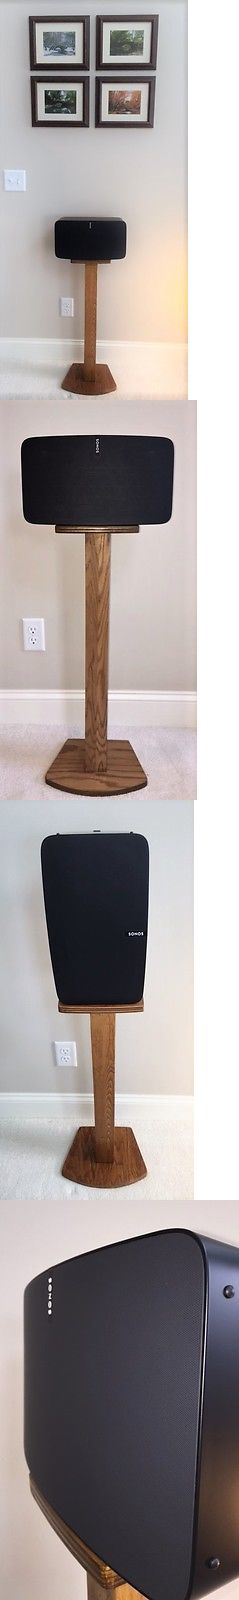 Speaker Mounts and Stands: Beautiful Oak Wood Single Speaker Stand Handcrafted For Sonos Play 5 (2Nd Gen) BUY IT NOW ONLY: $69.5